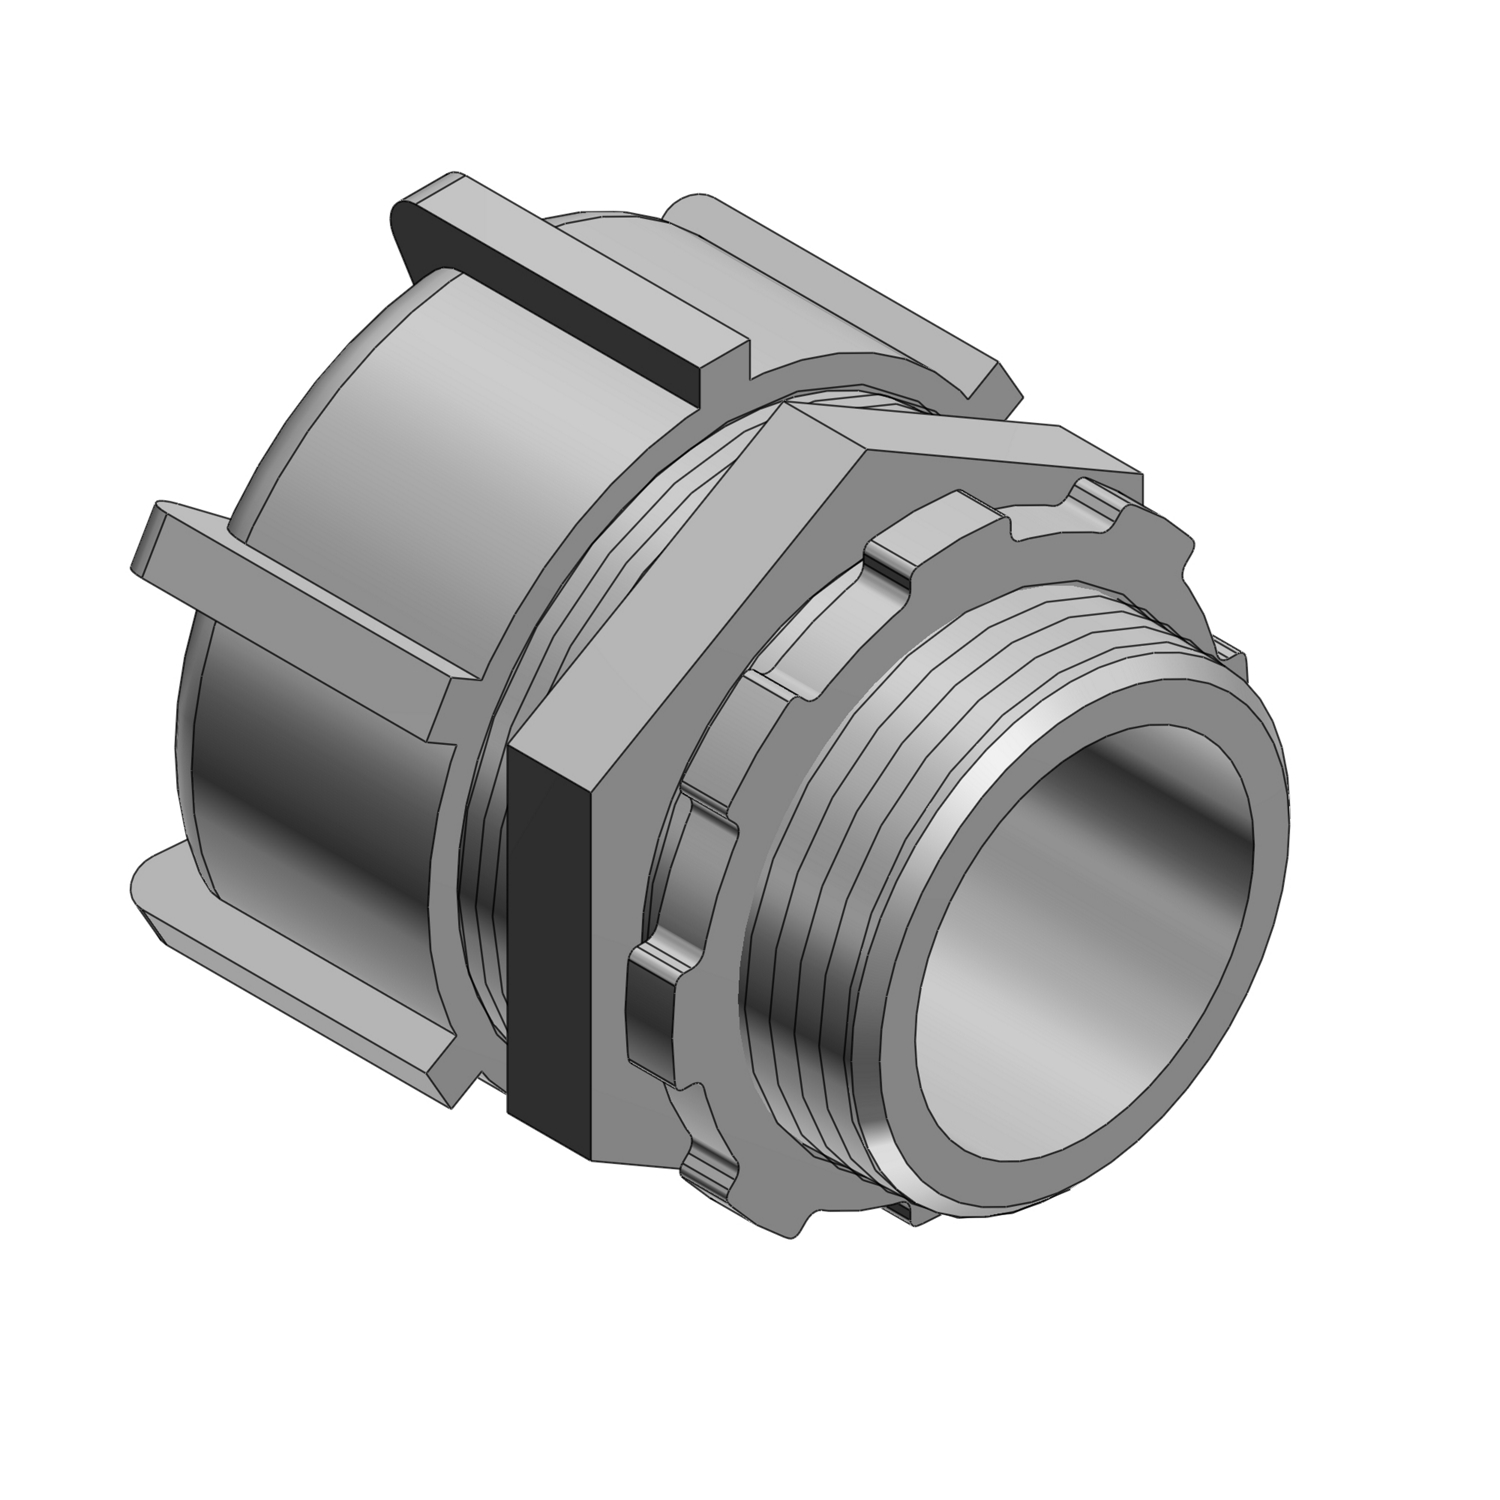 T&B Industrial Fitting 52 Series Flexible Non-Insulated Liquidtight Conduit Connector, 4 in Trade, Straight, Steel